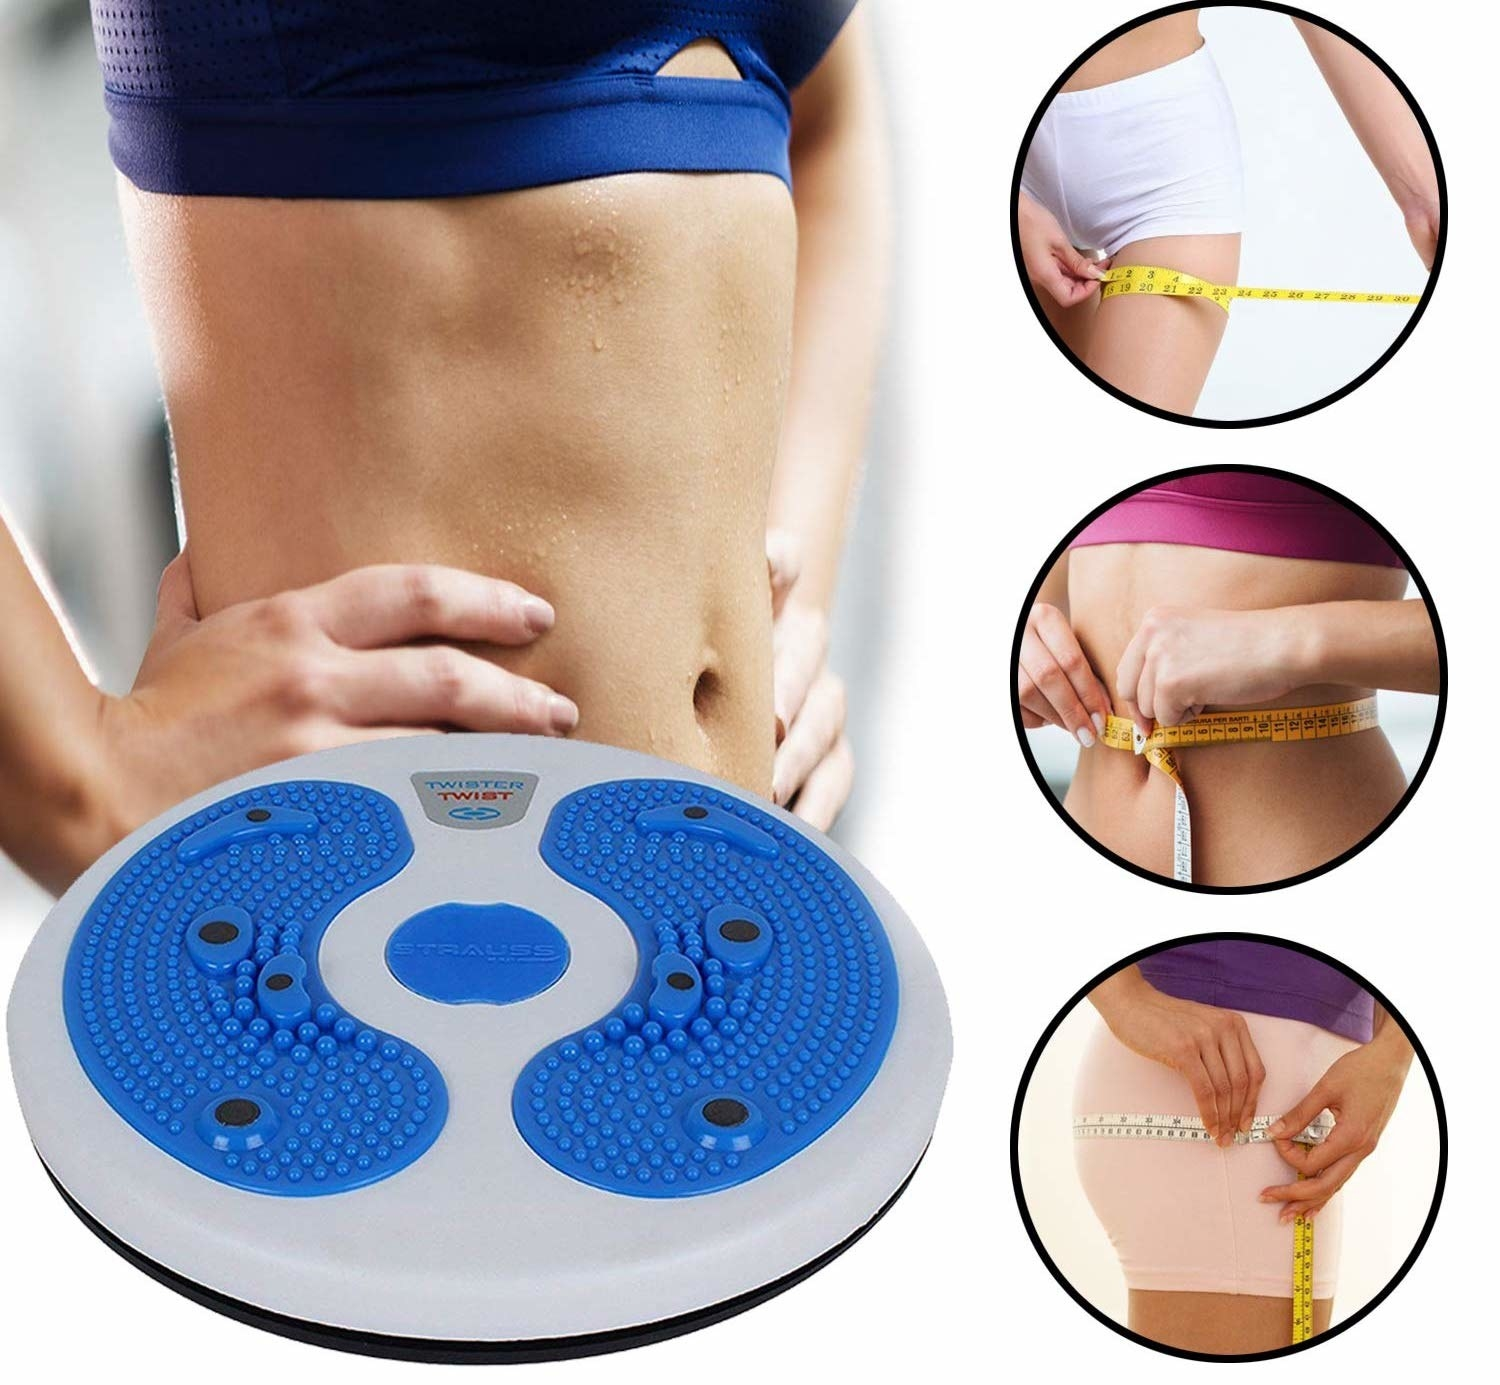 Circular gadget similar size as weighing machine, you stand and spin left and right on for a workout.